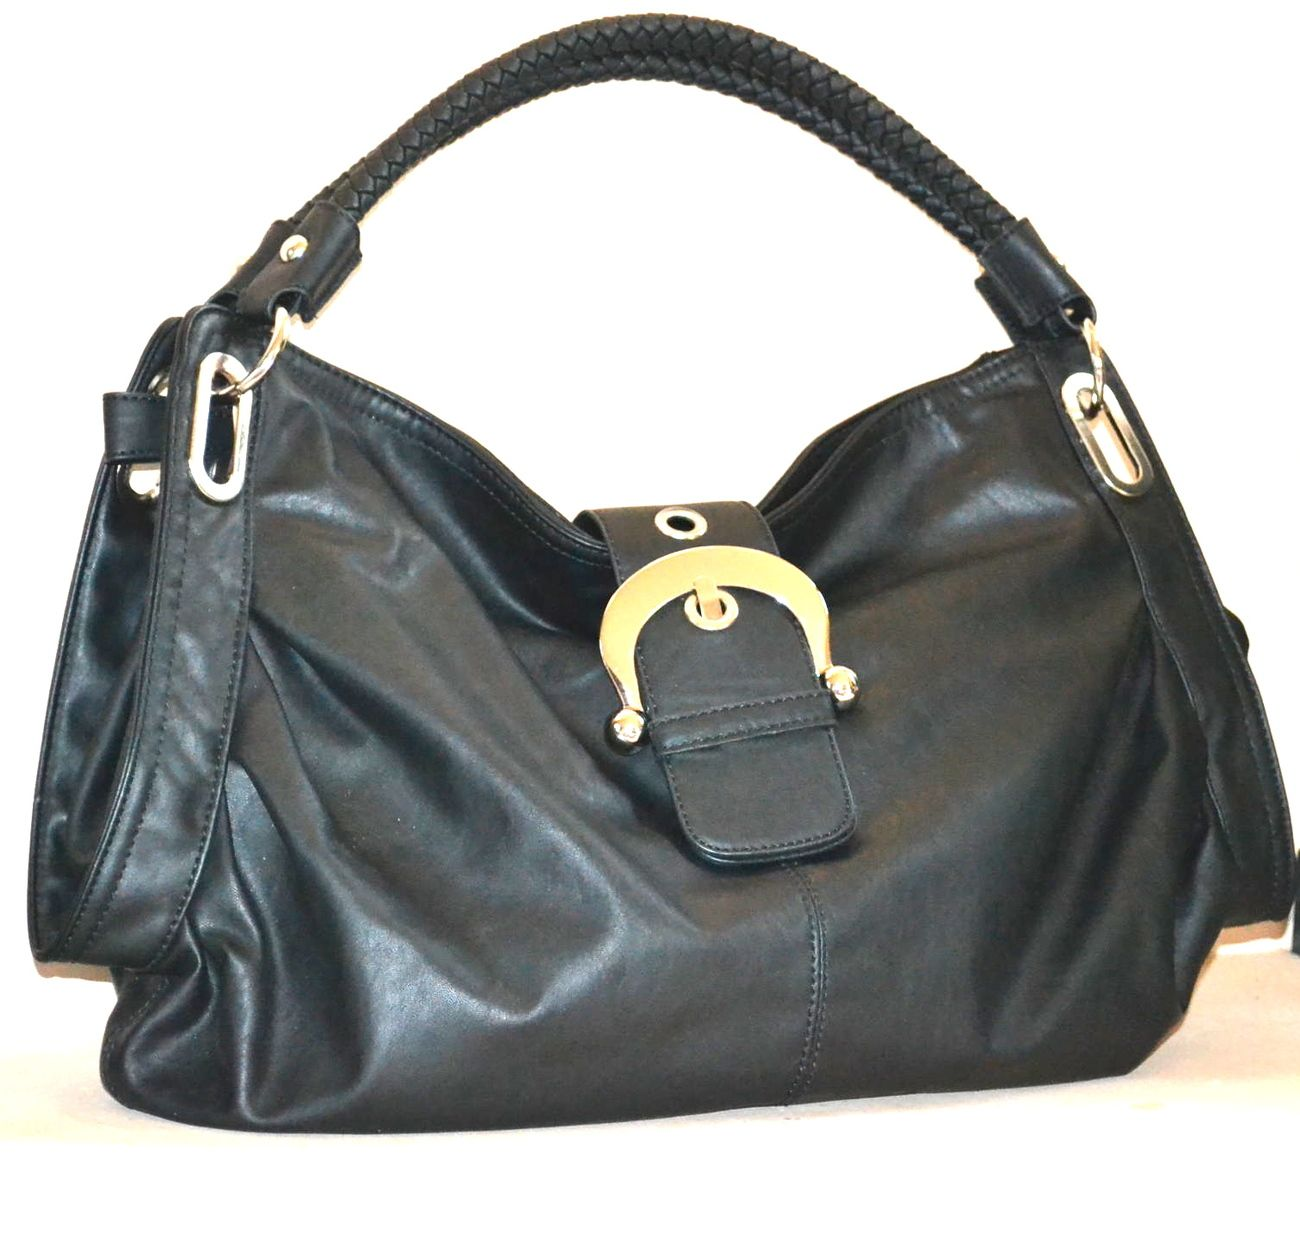 NEW ShoeDazzle Hobo Bag Vegan Black AUCKLAND Style :: Great Casual Purse Large Shoulder Bag